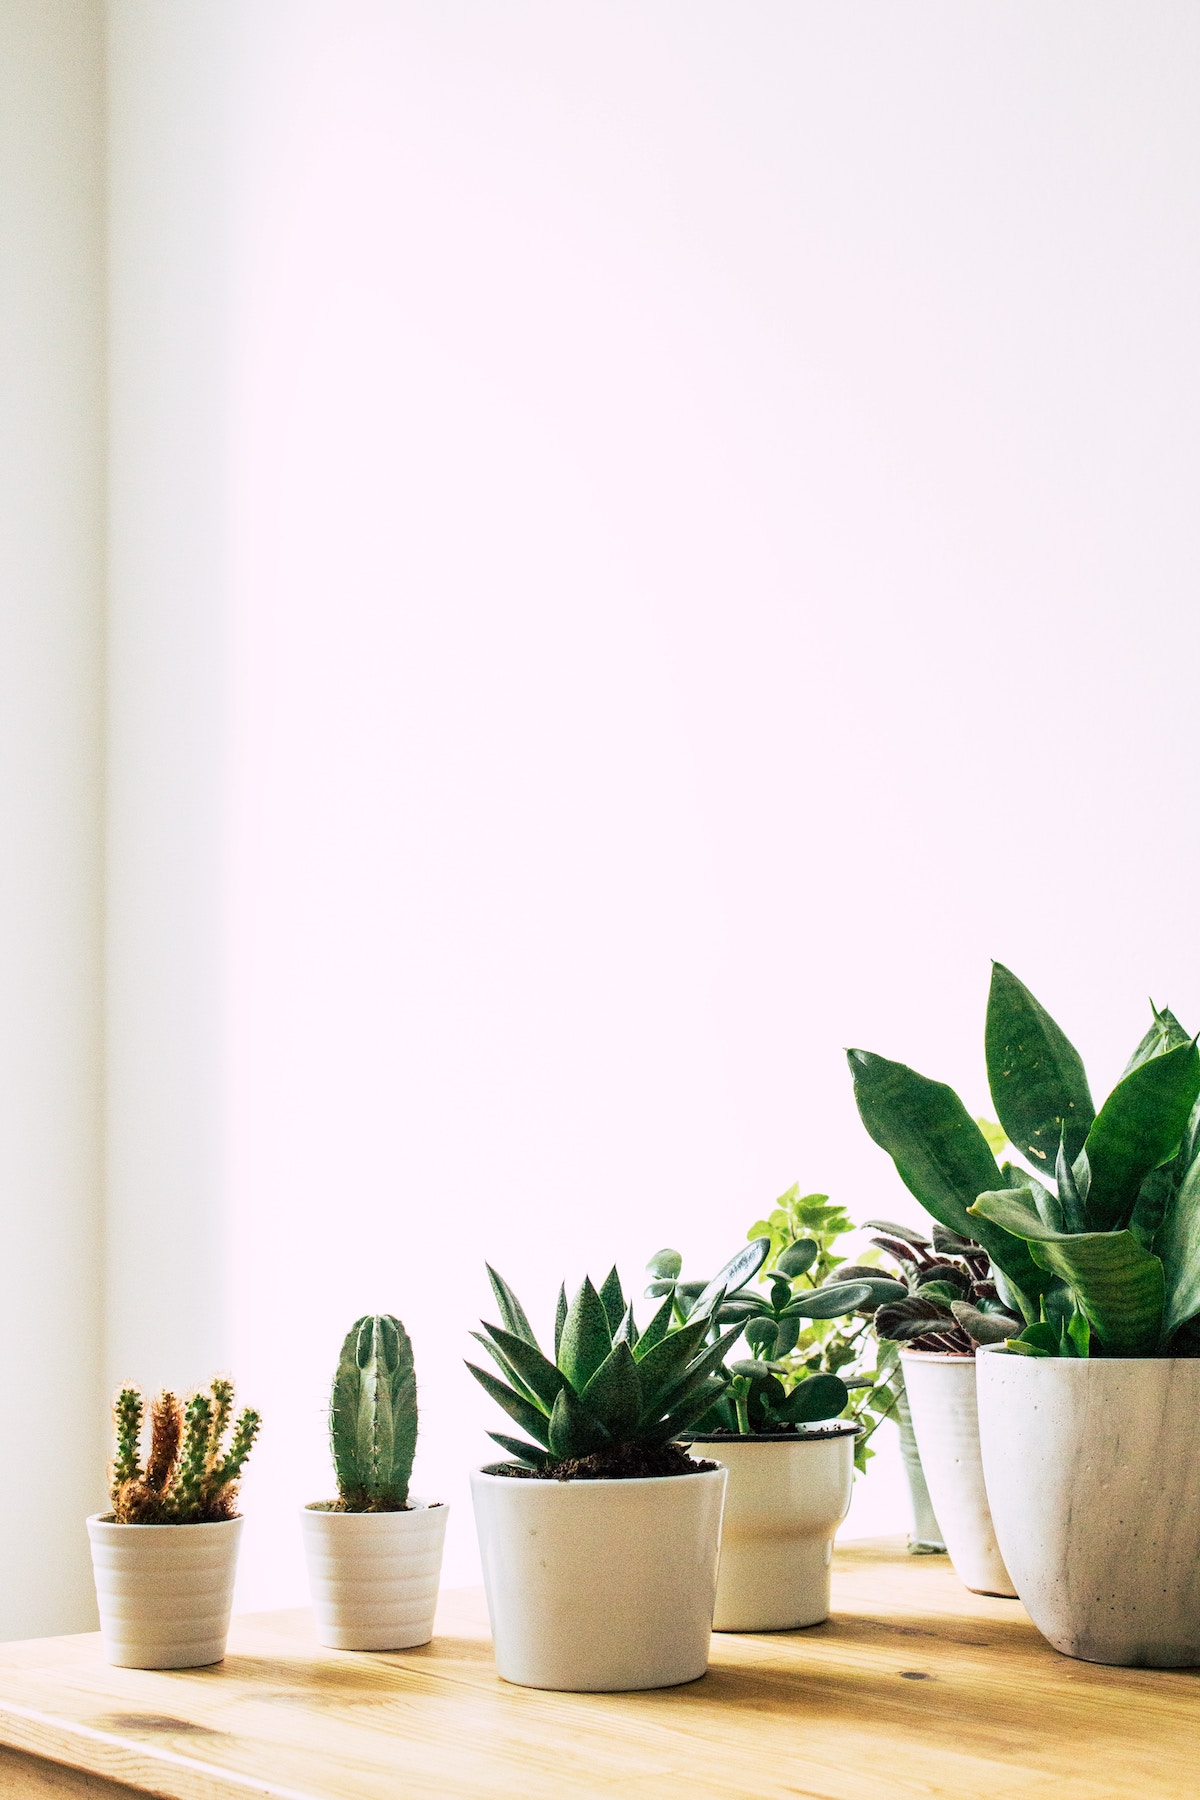 Stage a Still Life With Succulents & Decorating With House Plants